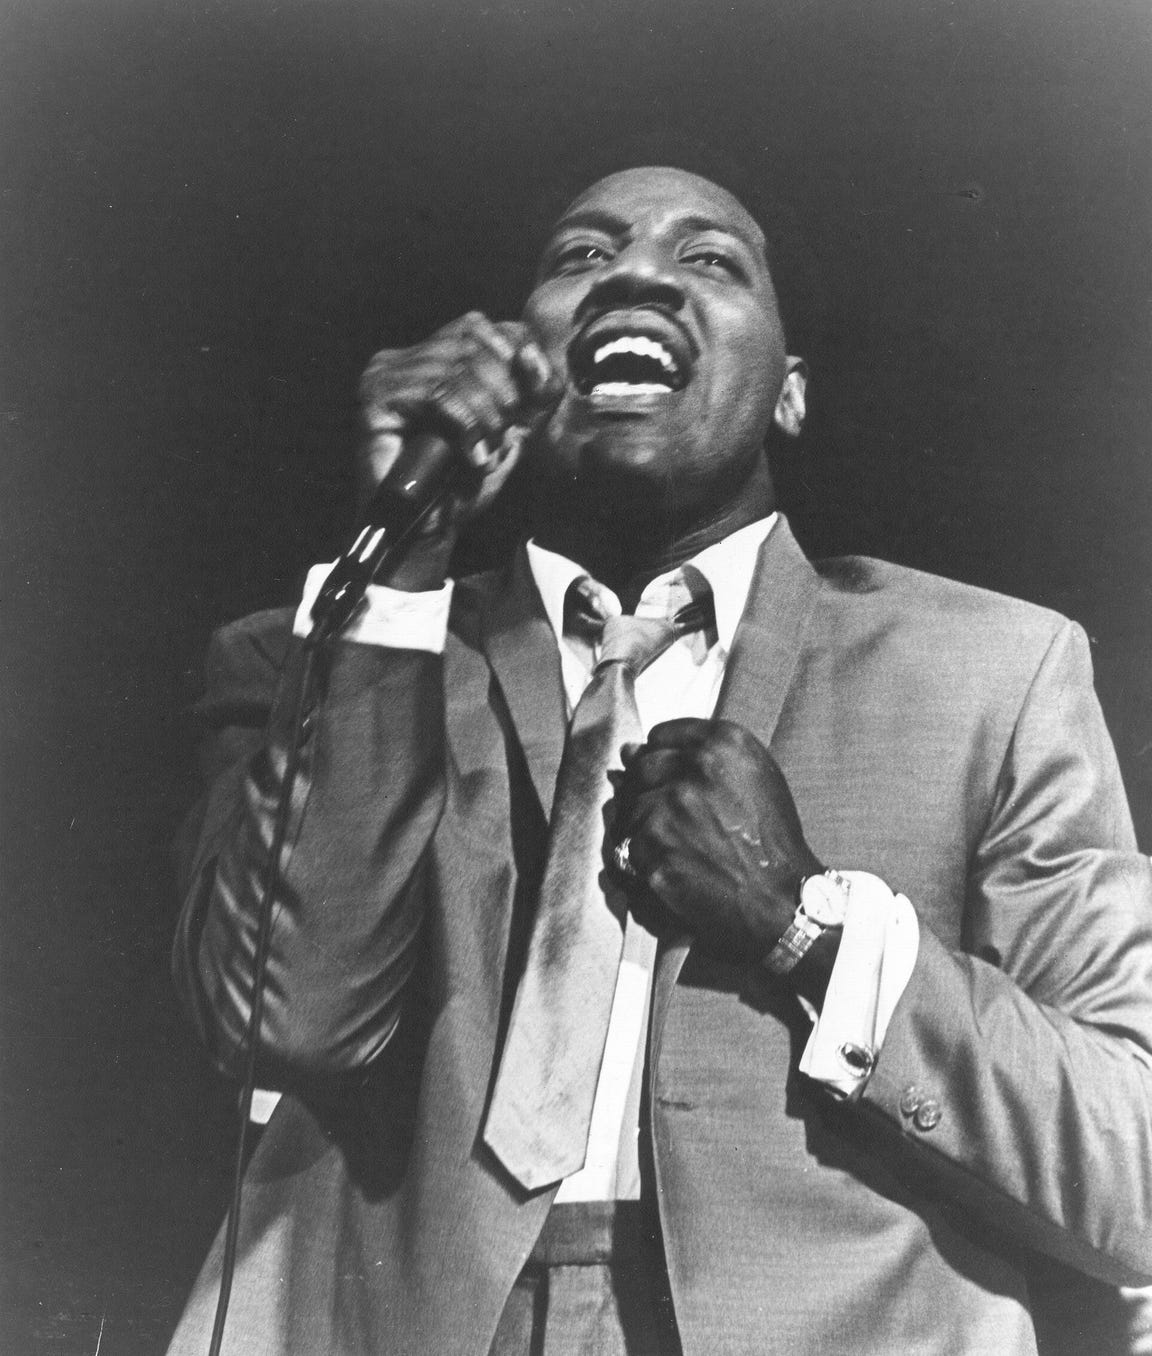 Otis Redding performs in 1967.